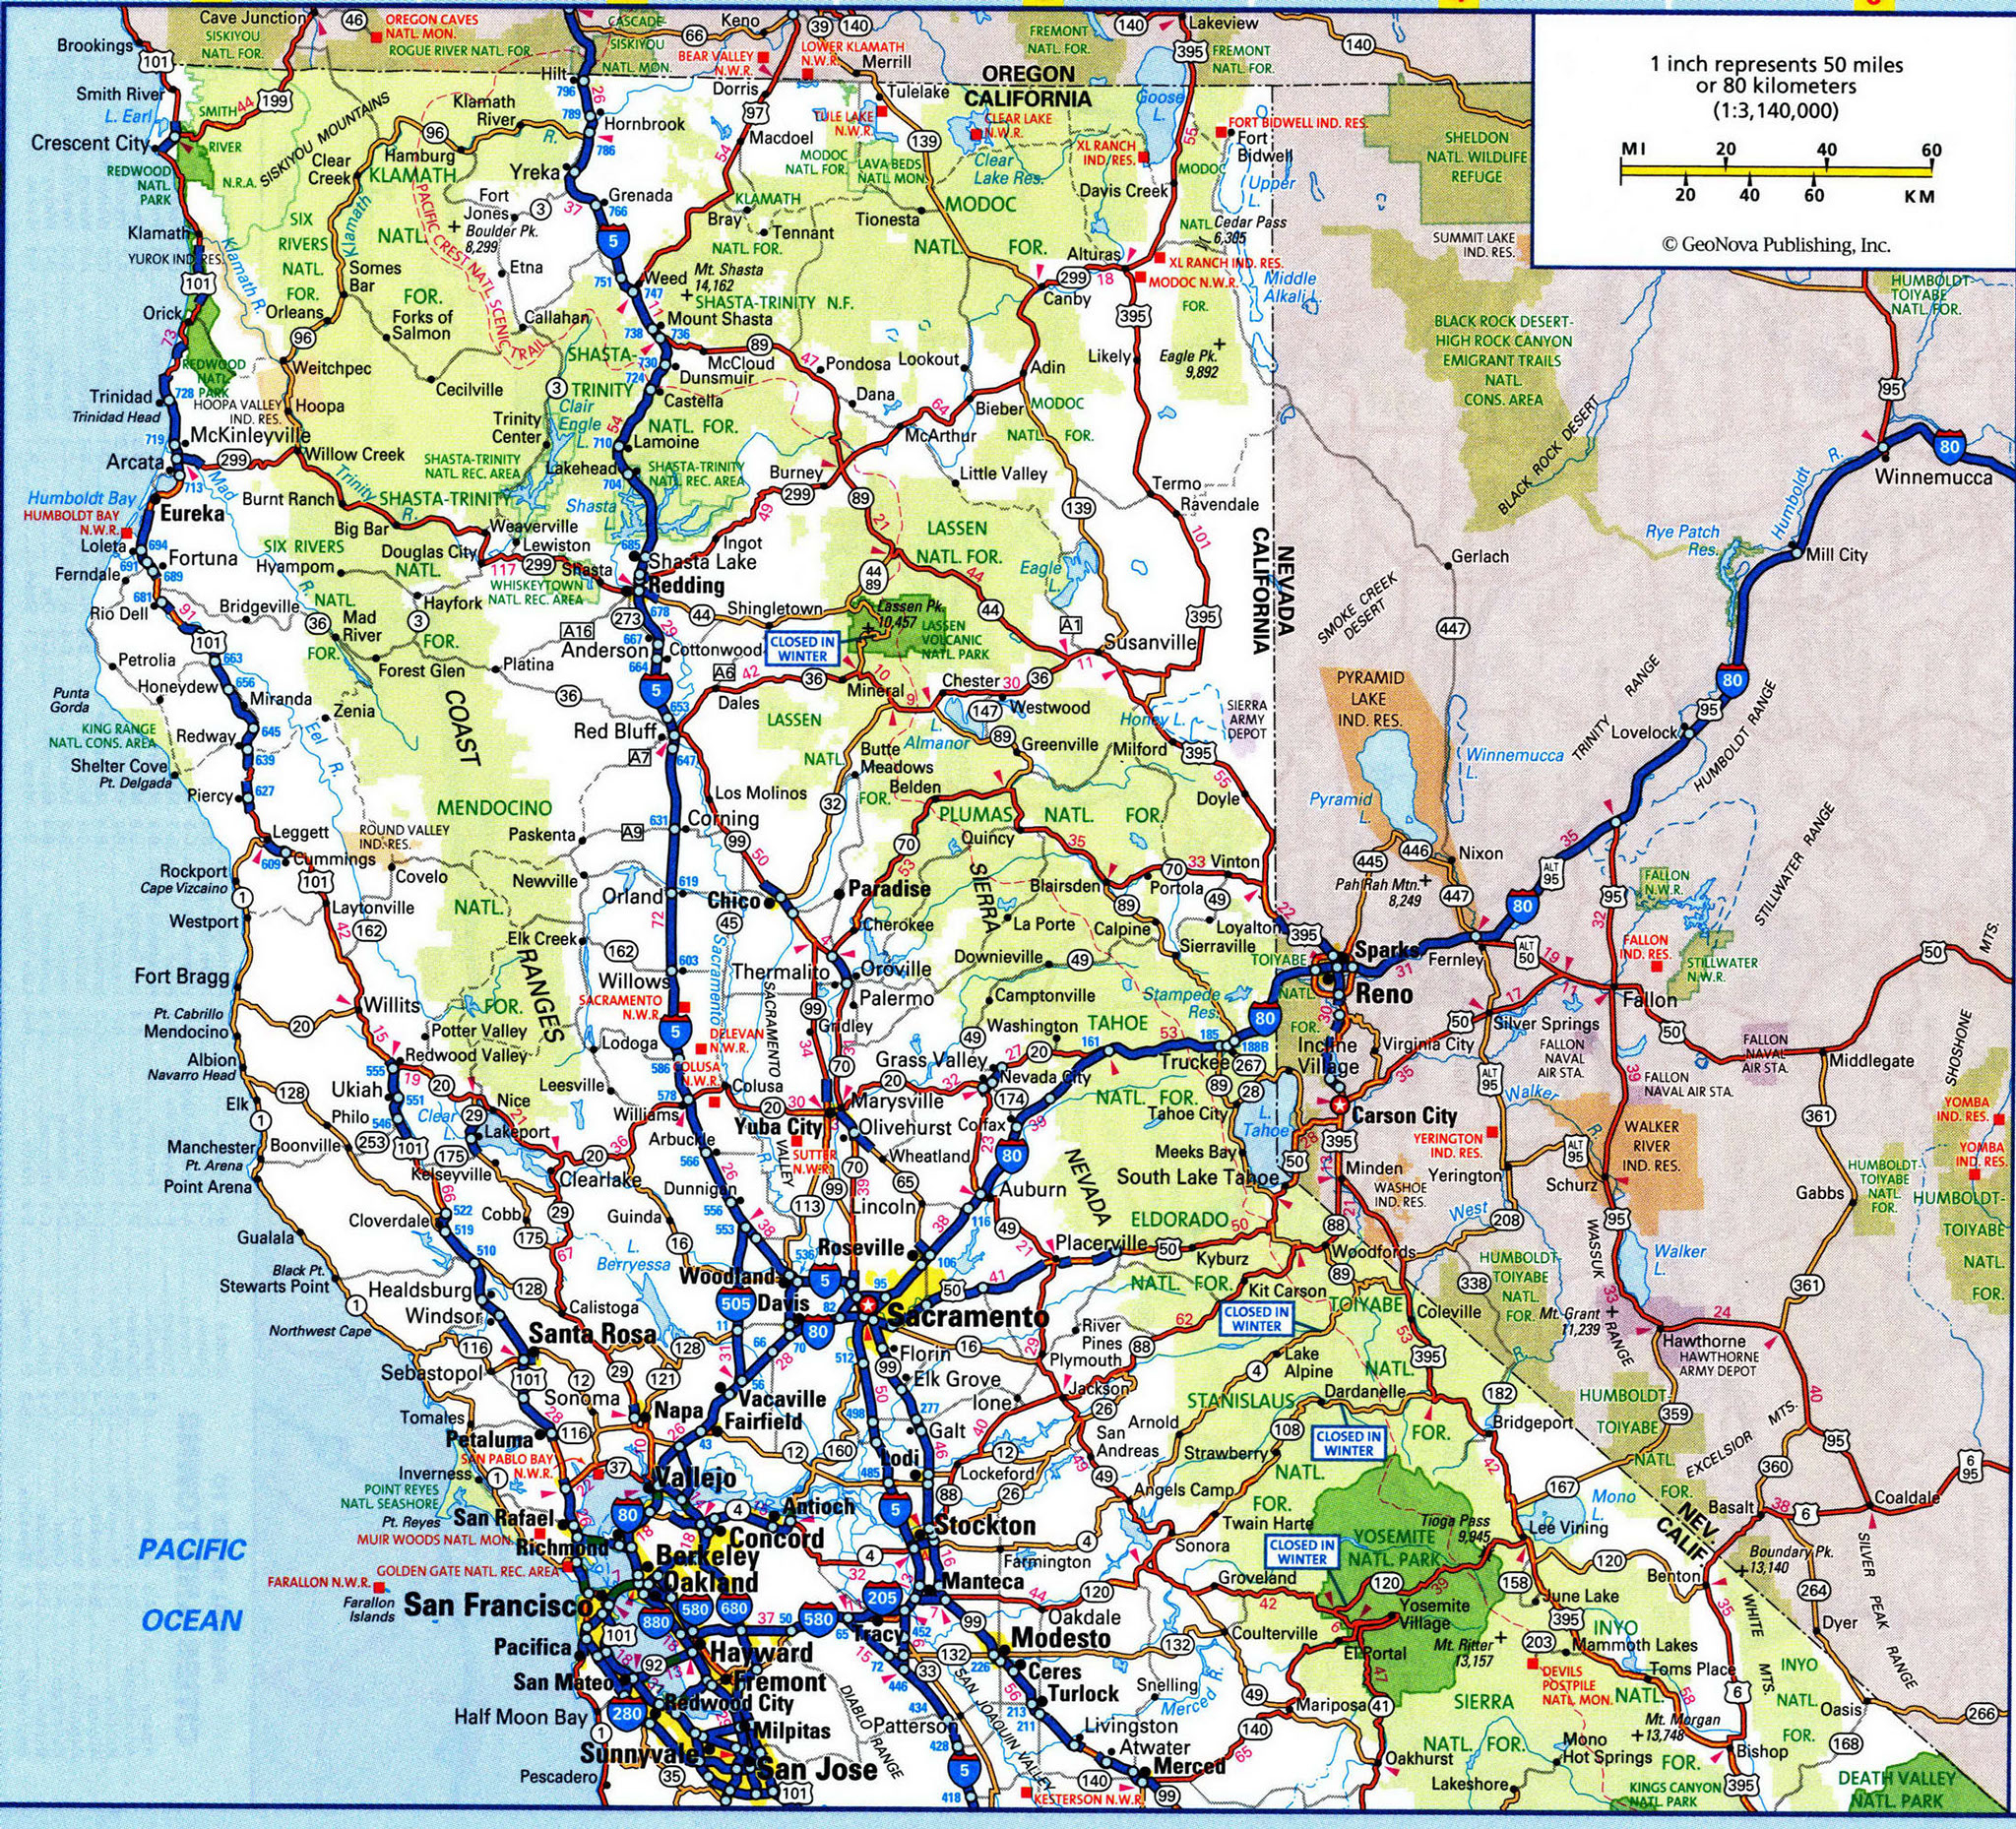 Map Of North California California River Map Detailed Map Of - Detailed Road Map Of Northern California